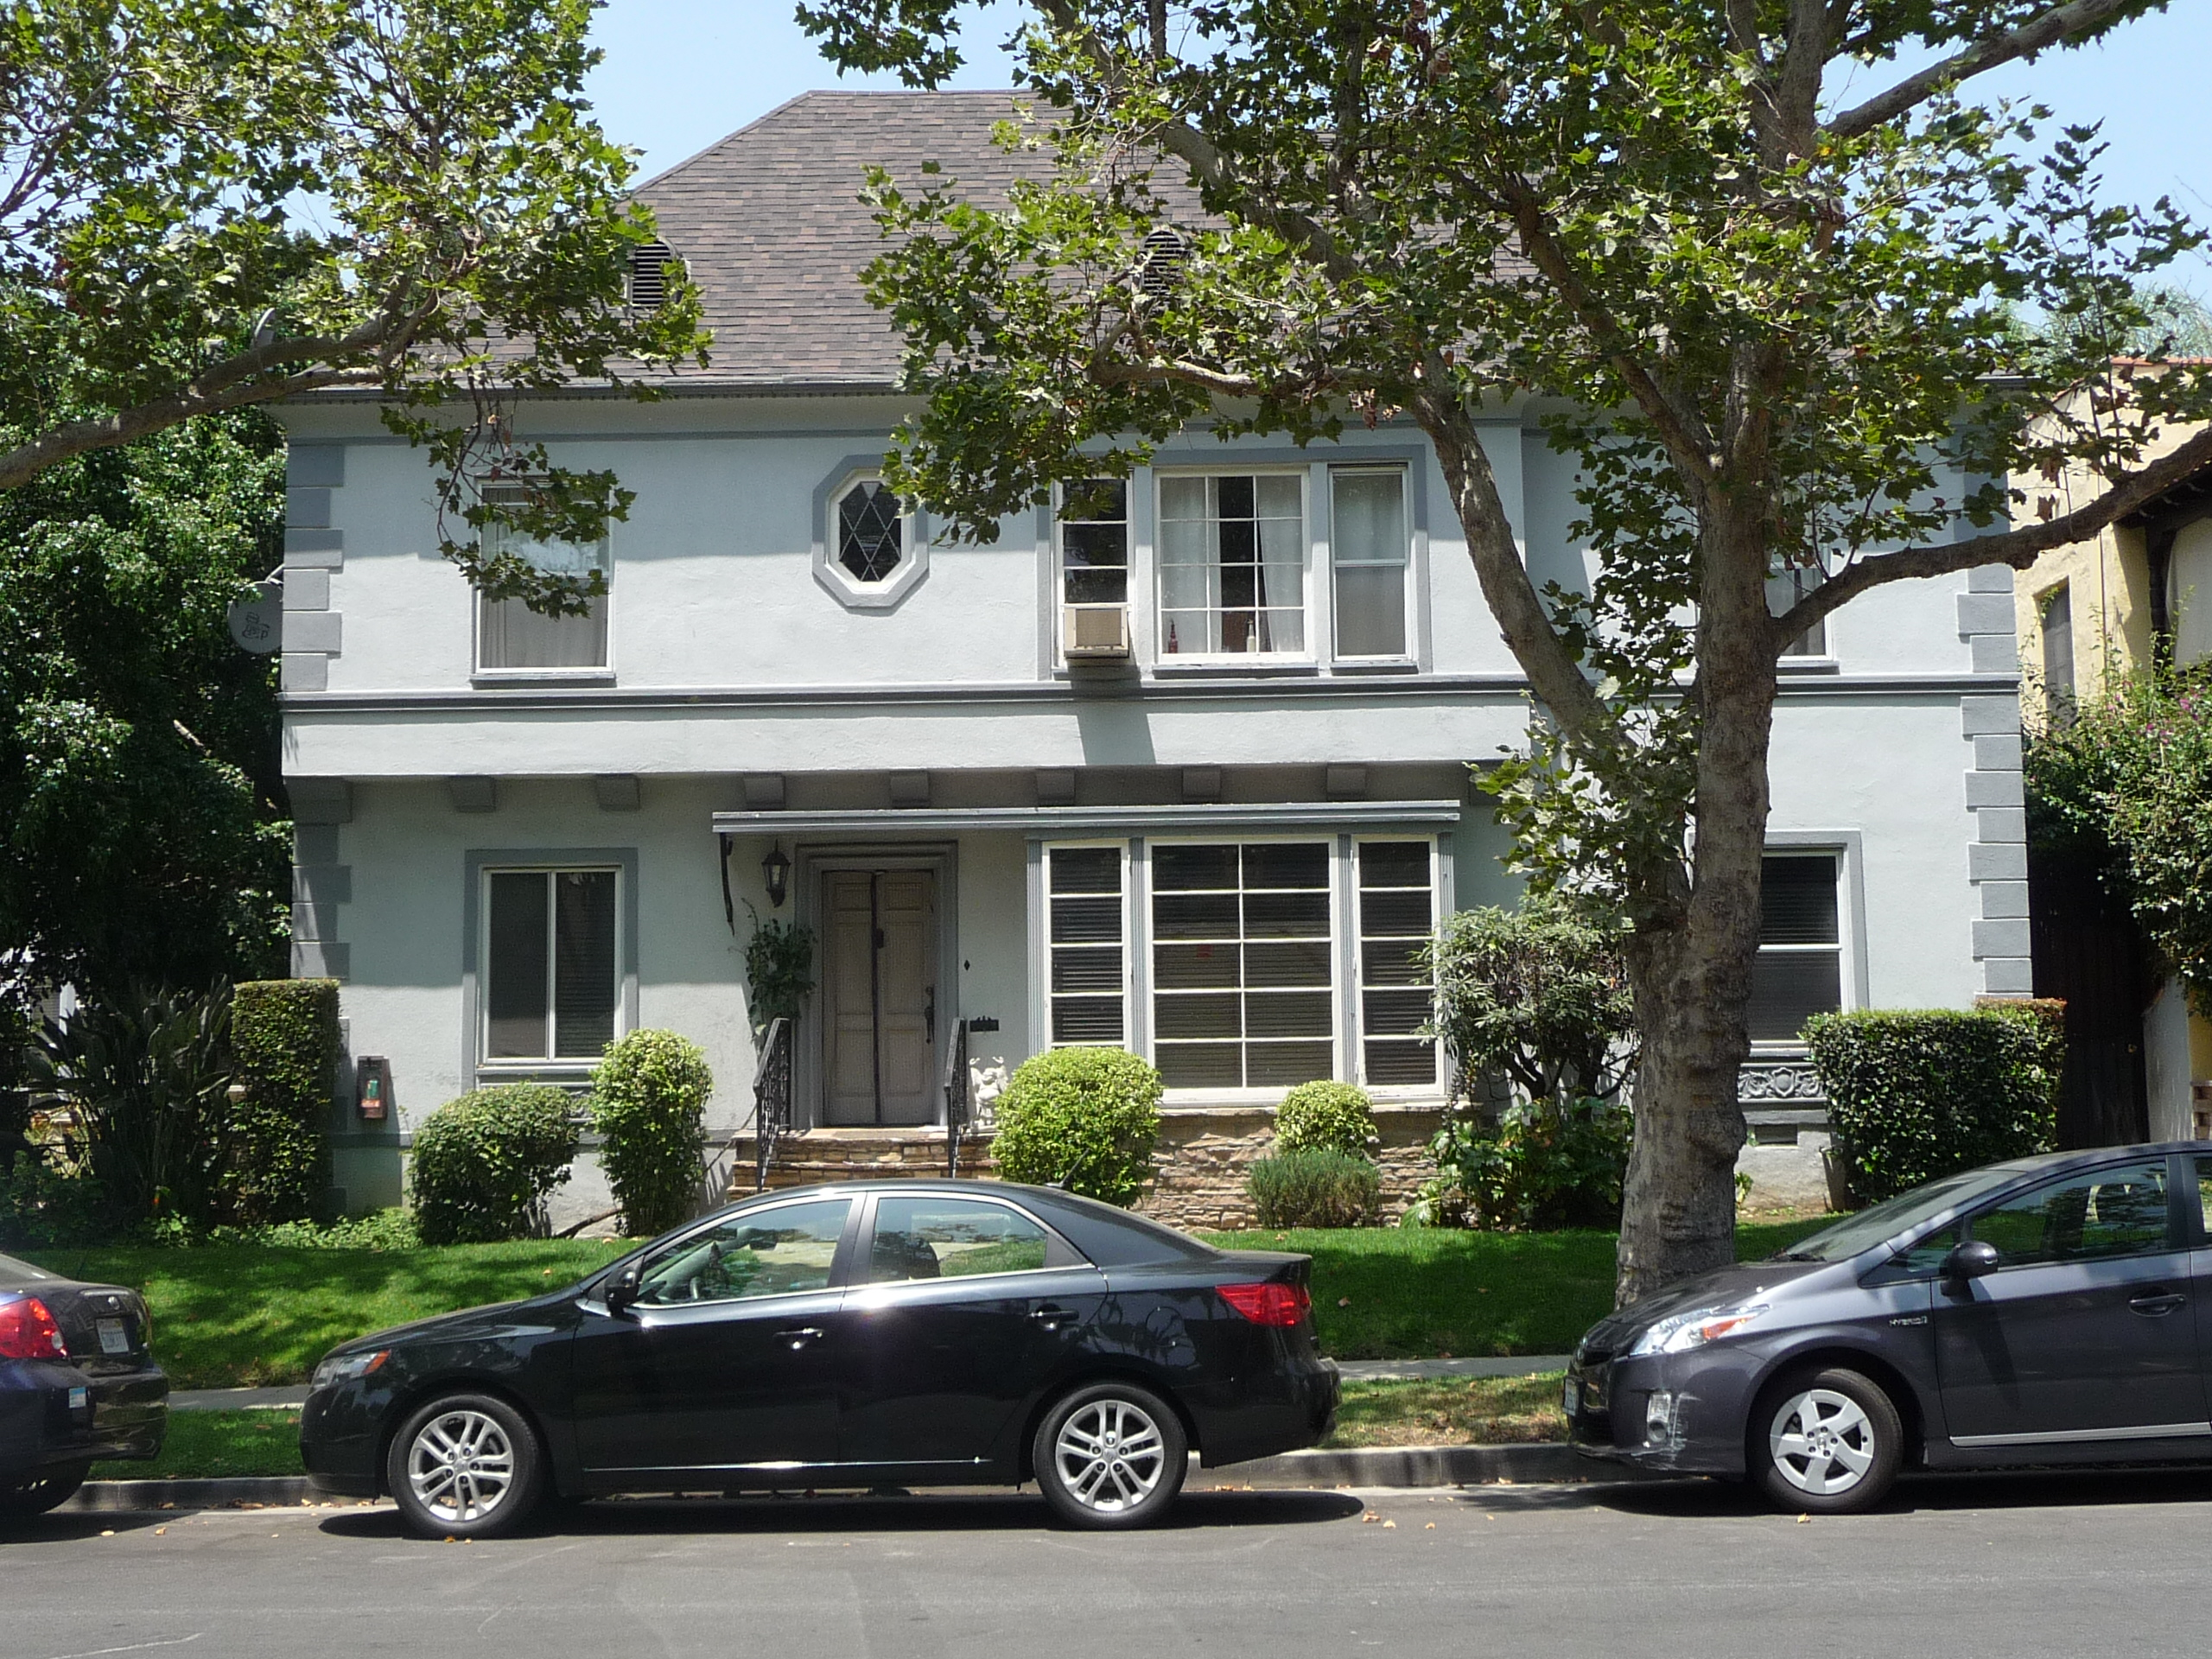 361 N SYCAMORE AVE - PHOTO